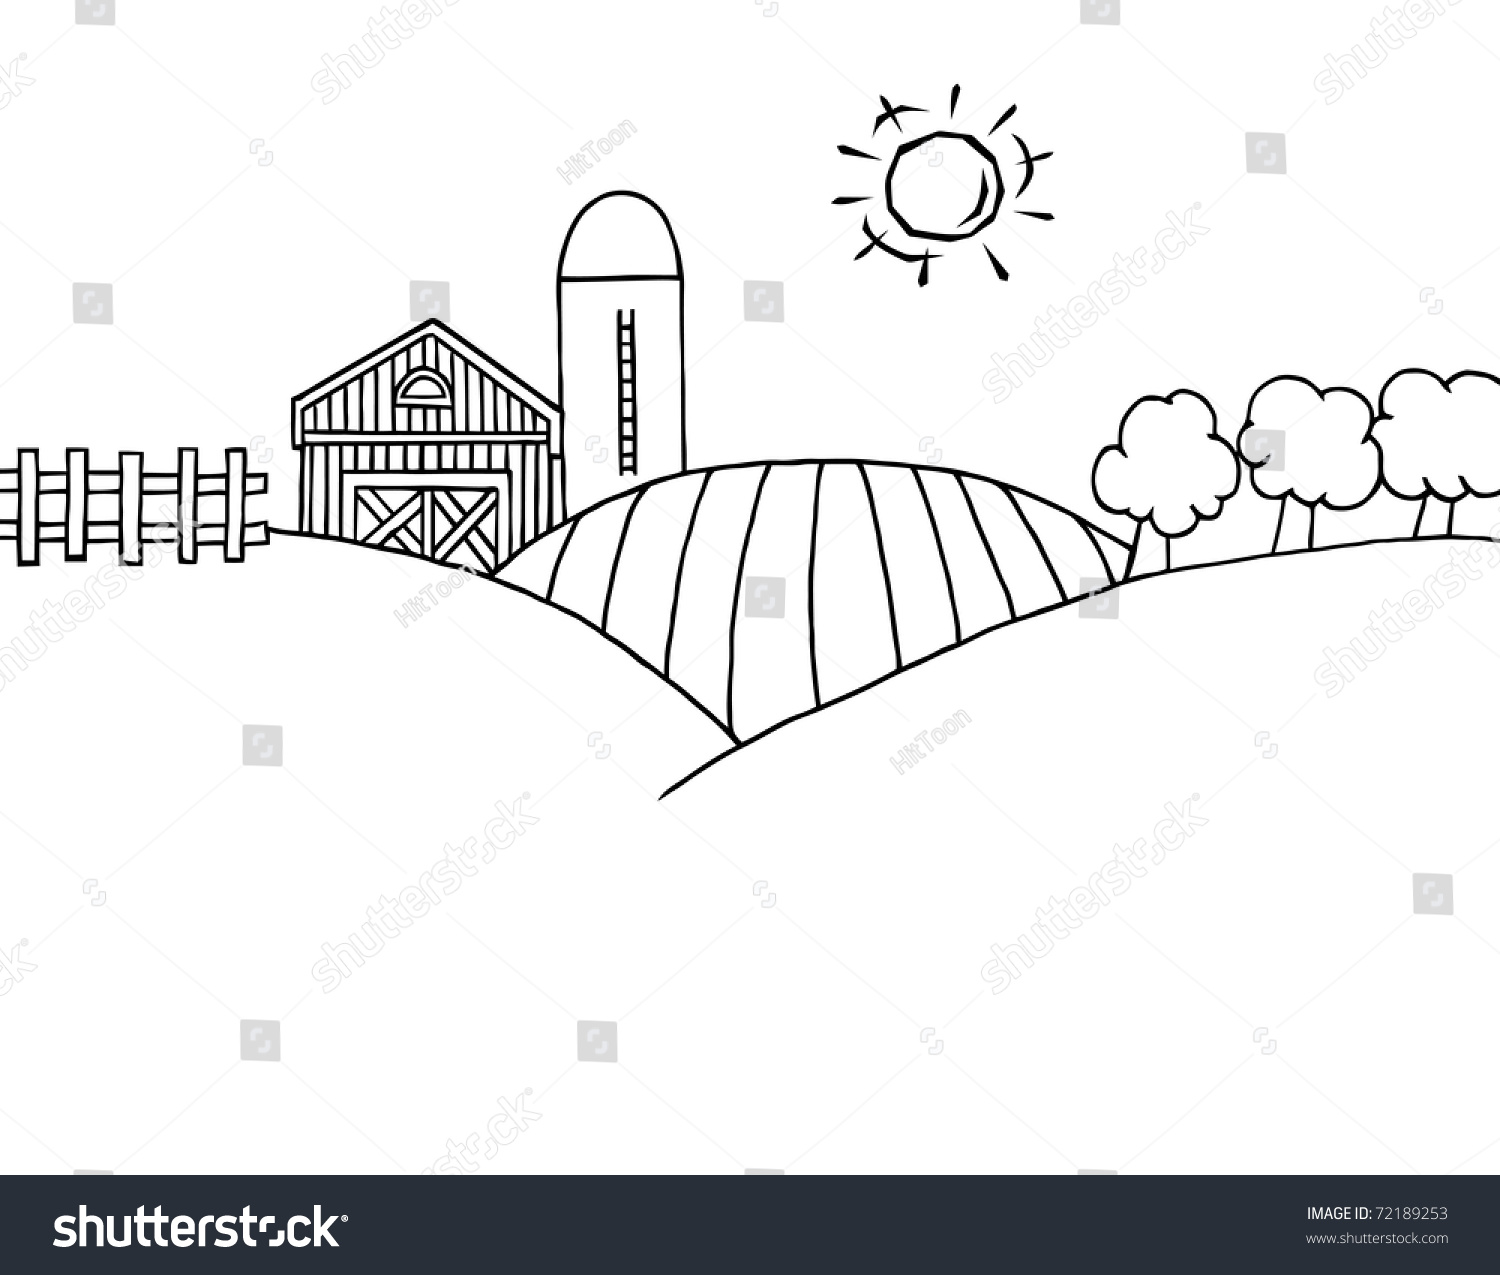 coloring page outline rolling hills farm stock illustration